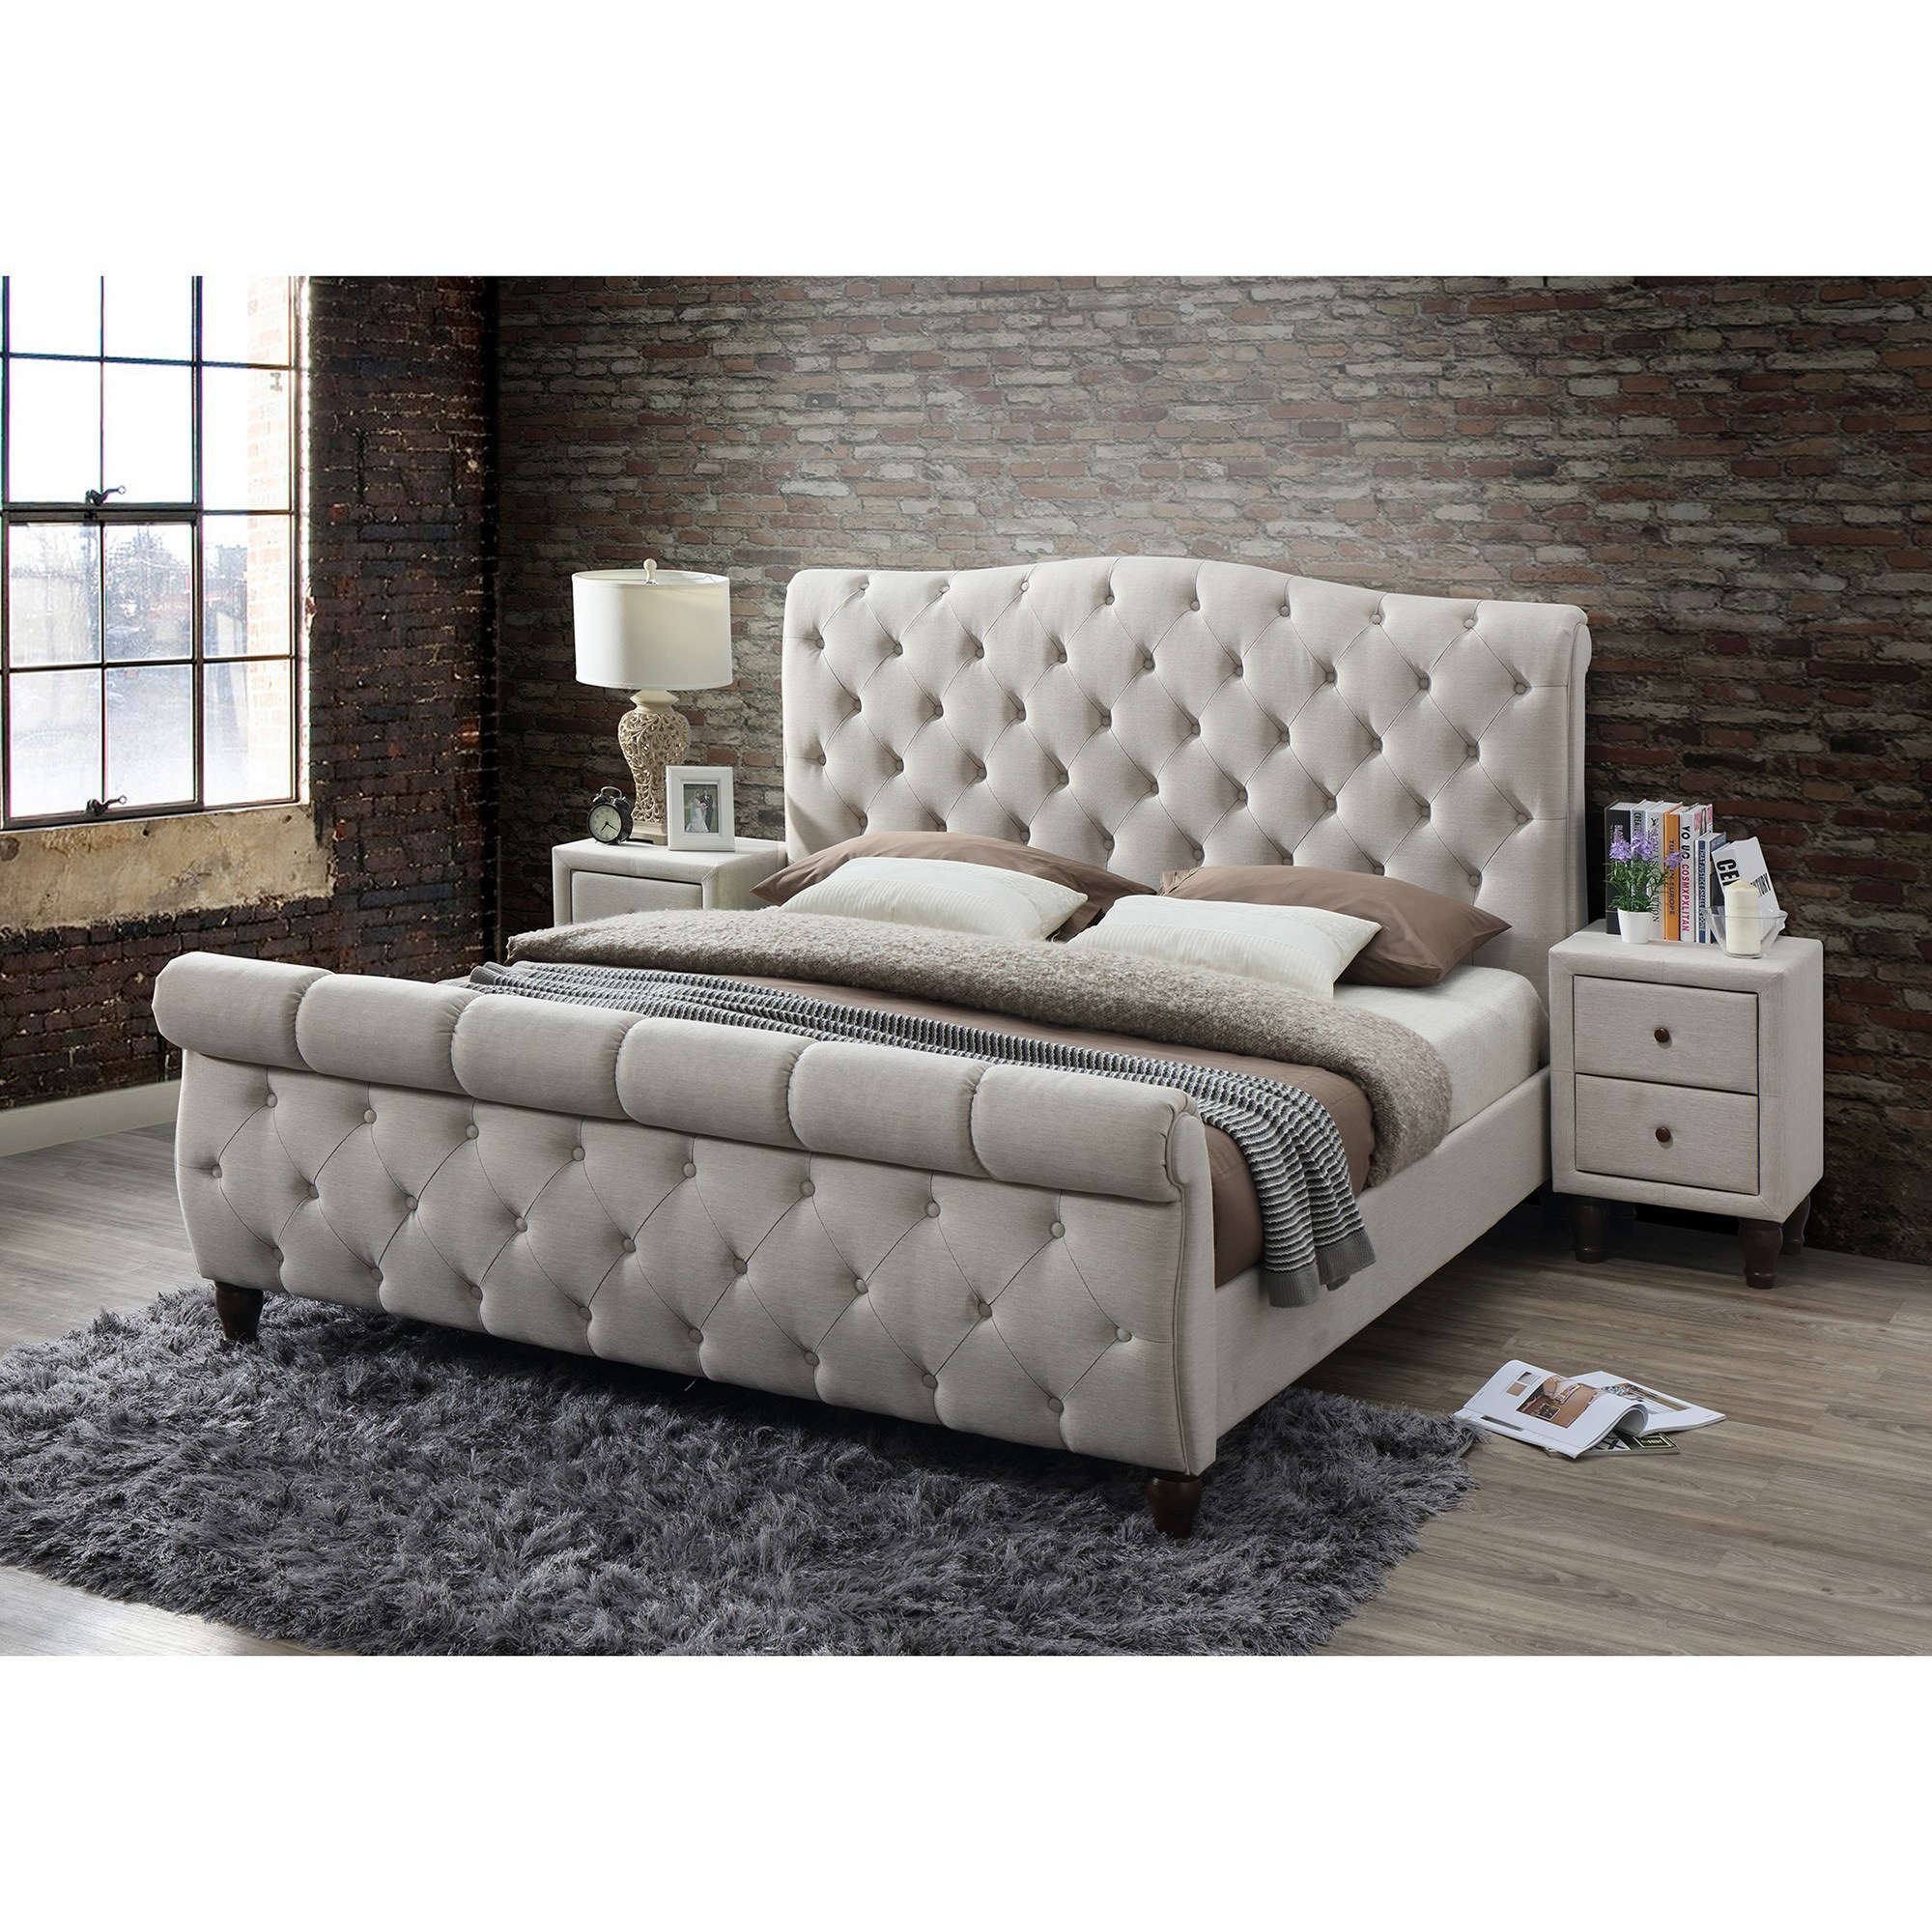 Curtis Tufted Fabric Sleigh Bed, King